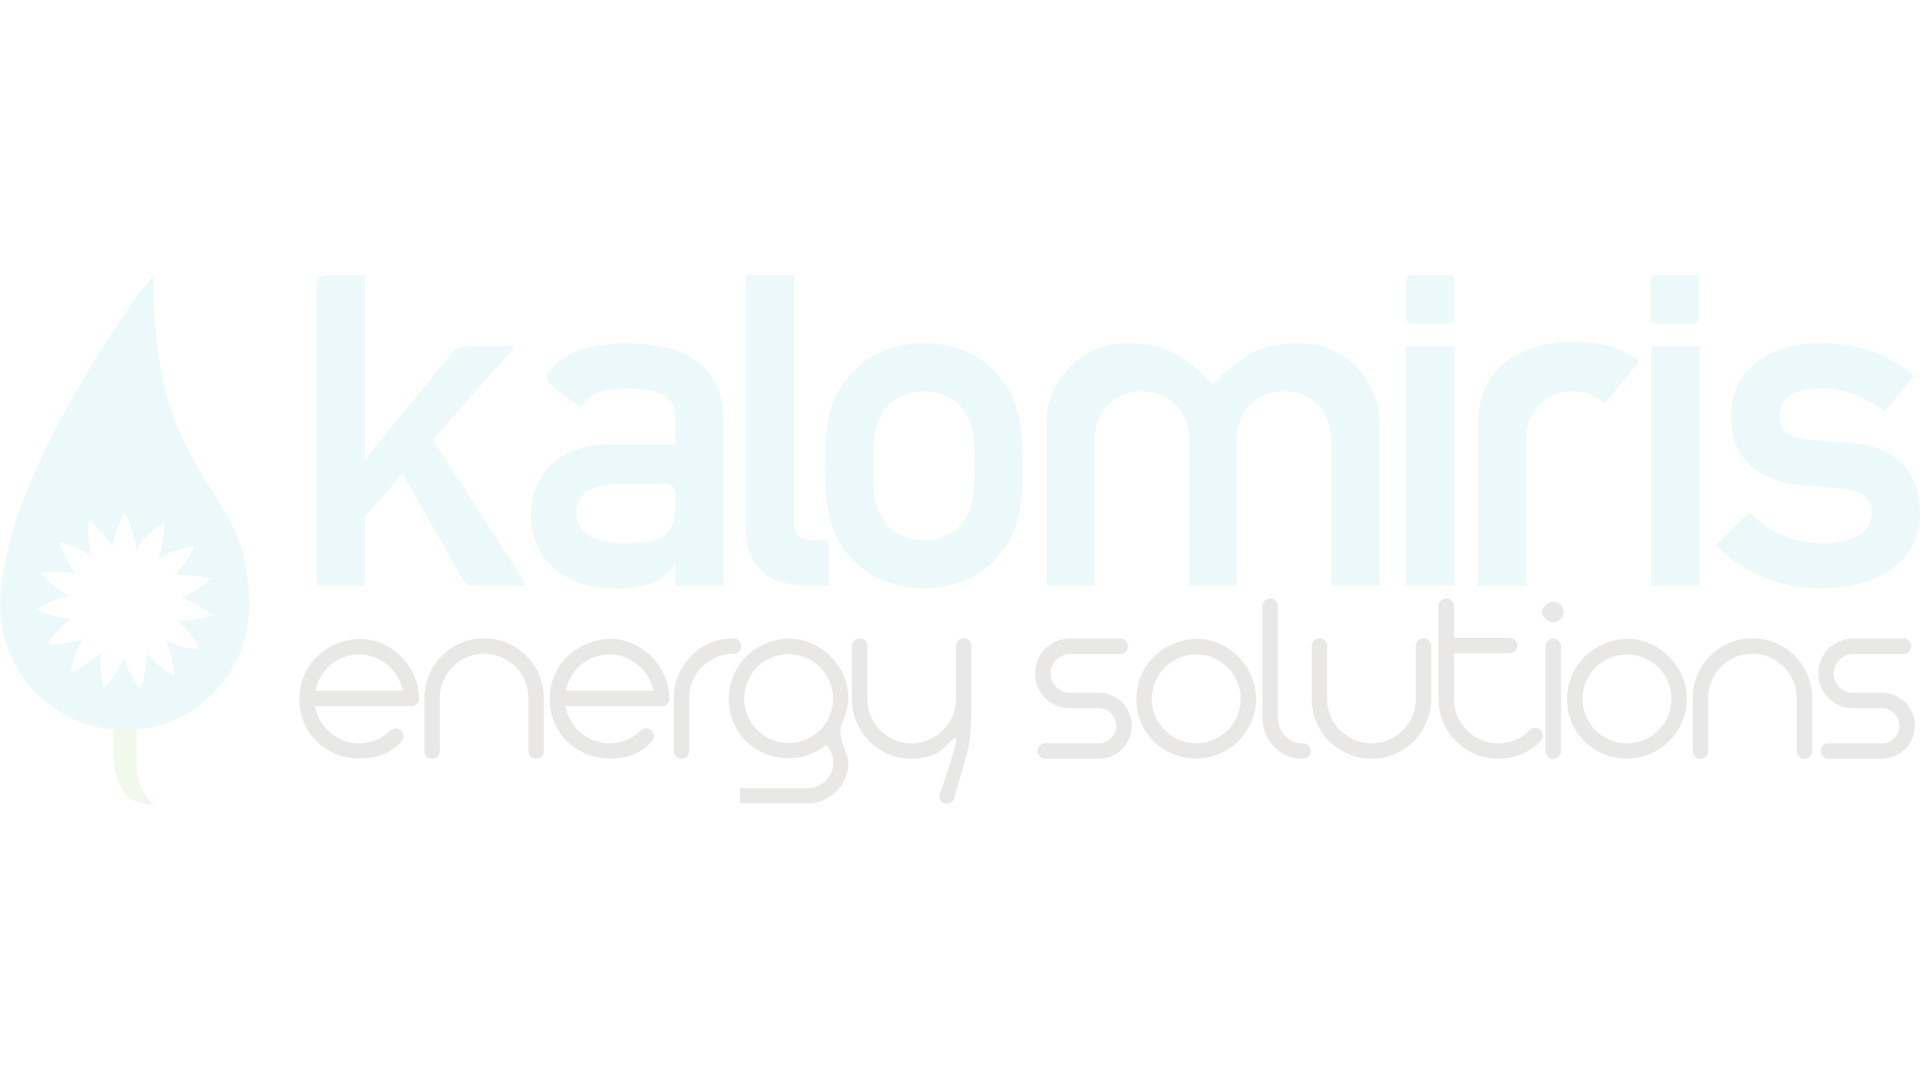 """Ceiling Fan CASAFAN ECO CONCEPT 152 LG-WE/LG White / Light Gray 60"""" (152cm) with Light KIT"""